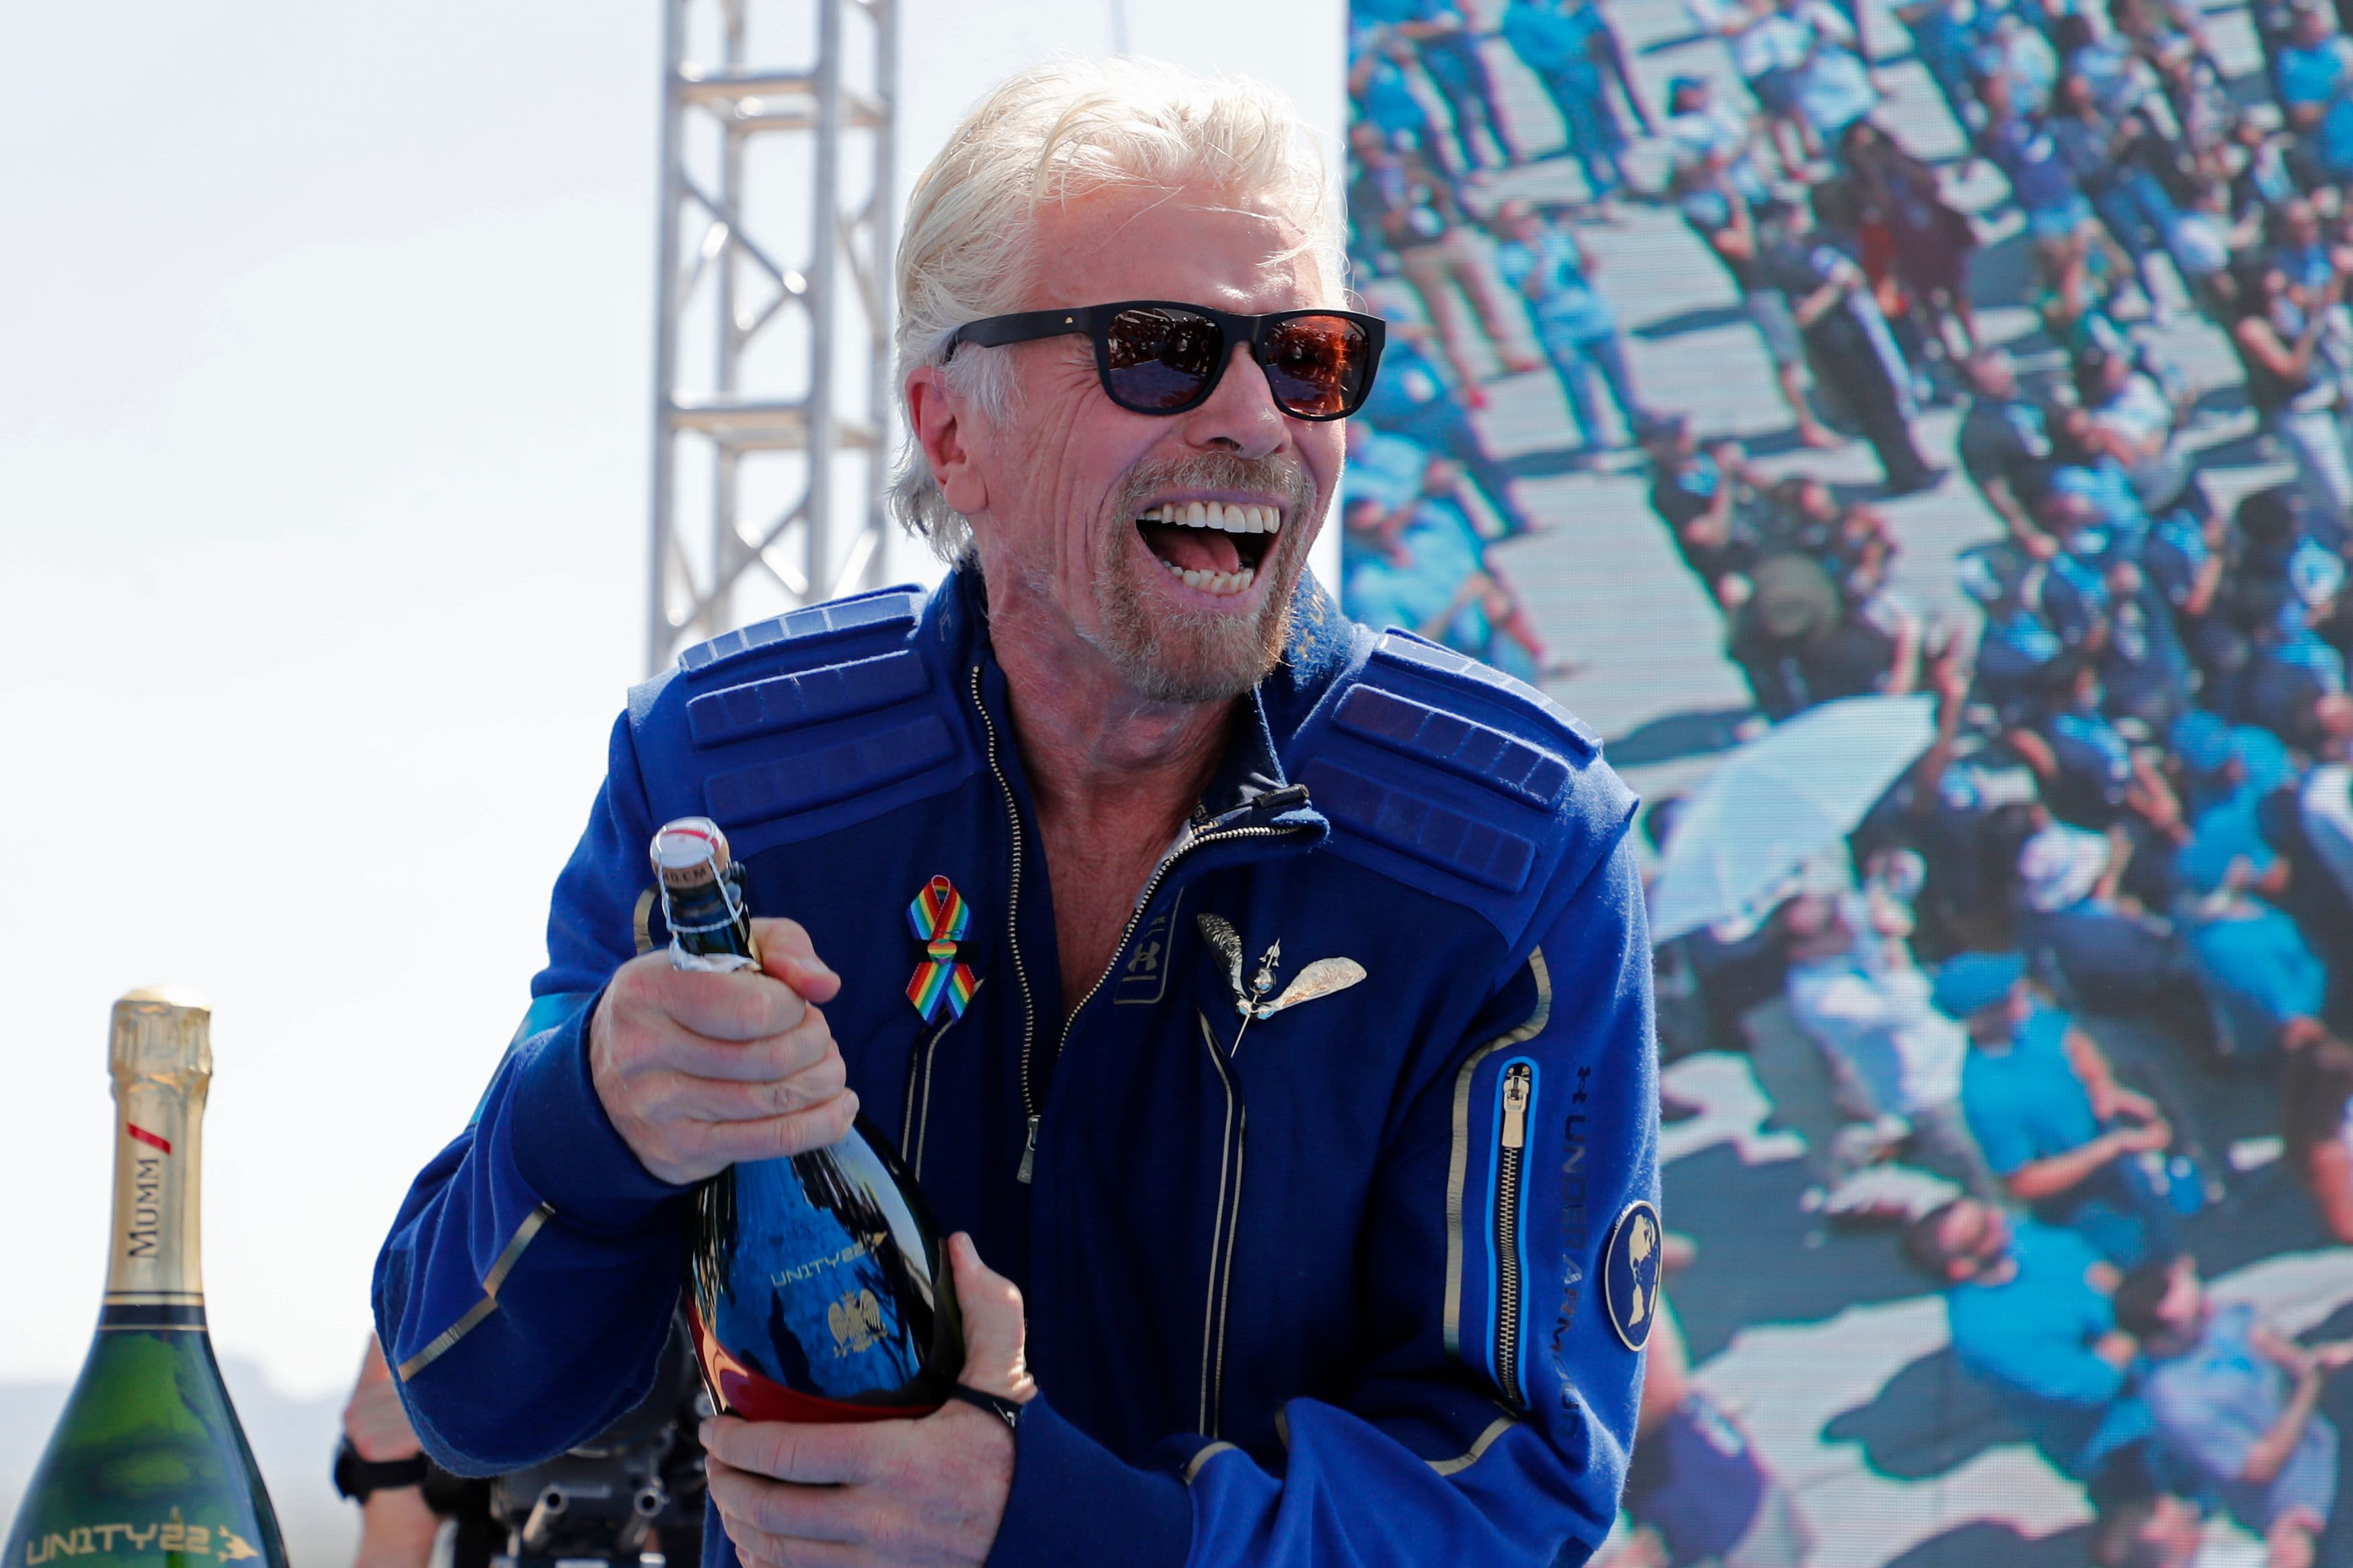 NASA chief says Richard Branson's flight was a great milestone in human space exploration